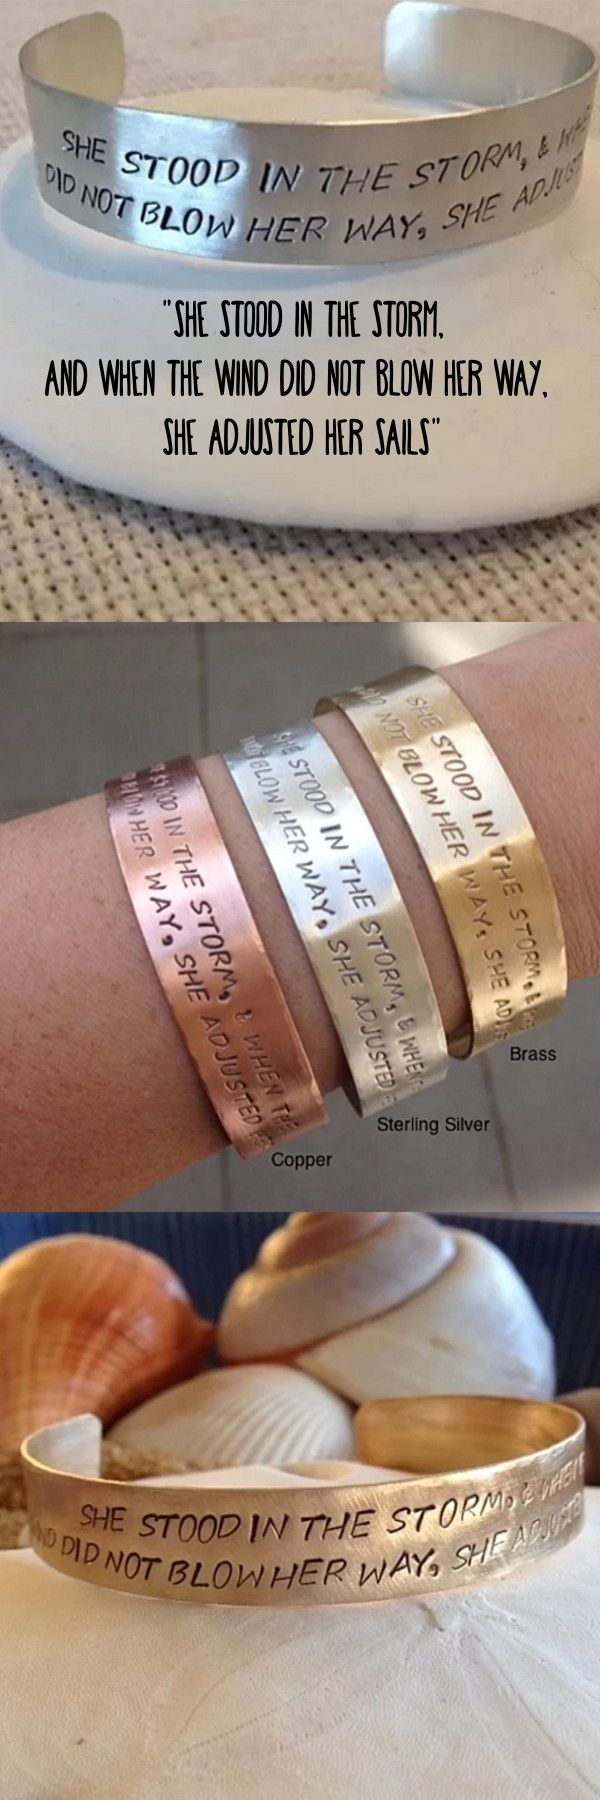 """""""She Stood In The Storm, and When The Wind Did Not Blow Her Way, She Adjusted Her Sails"""" - Elizabeth Edwards. Wear this bracelet as a reminder of our strength. Hand stamped cuff bracelet available in brass (gold), copper, aluminum or Sterling Silver."""